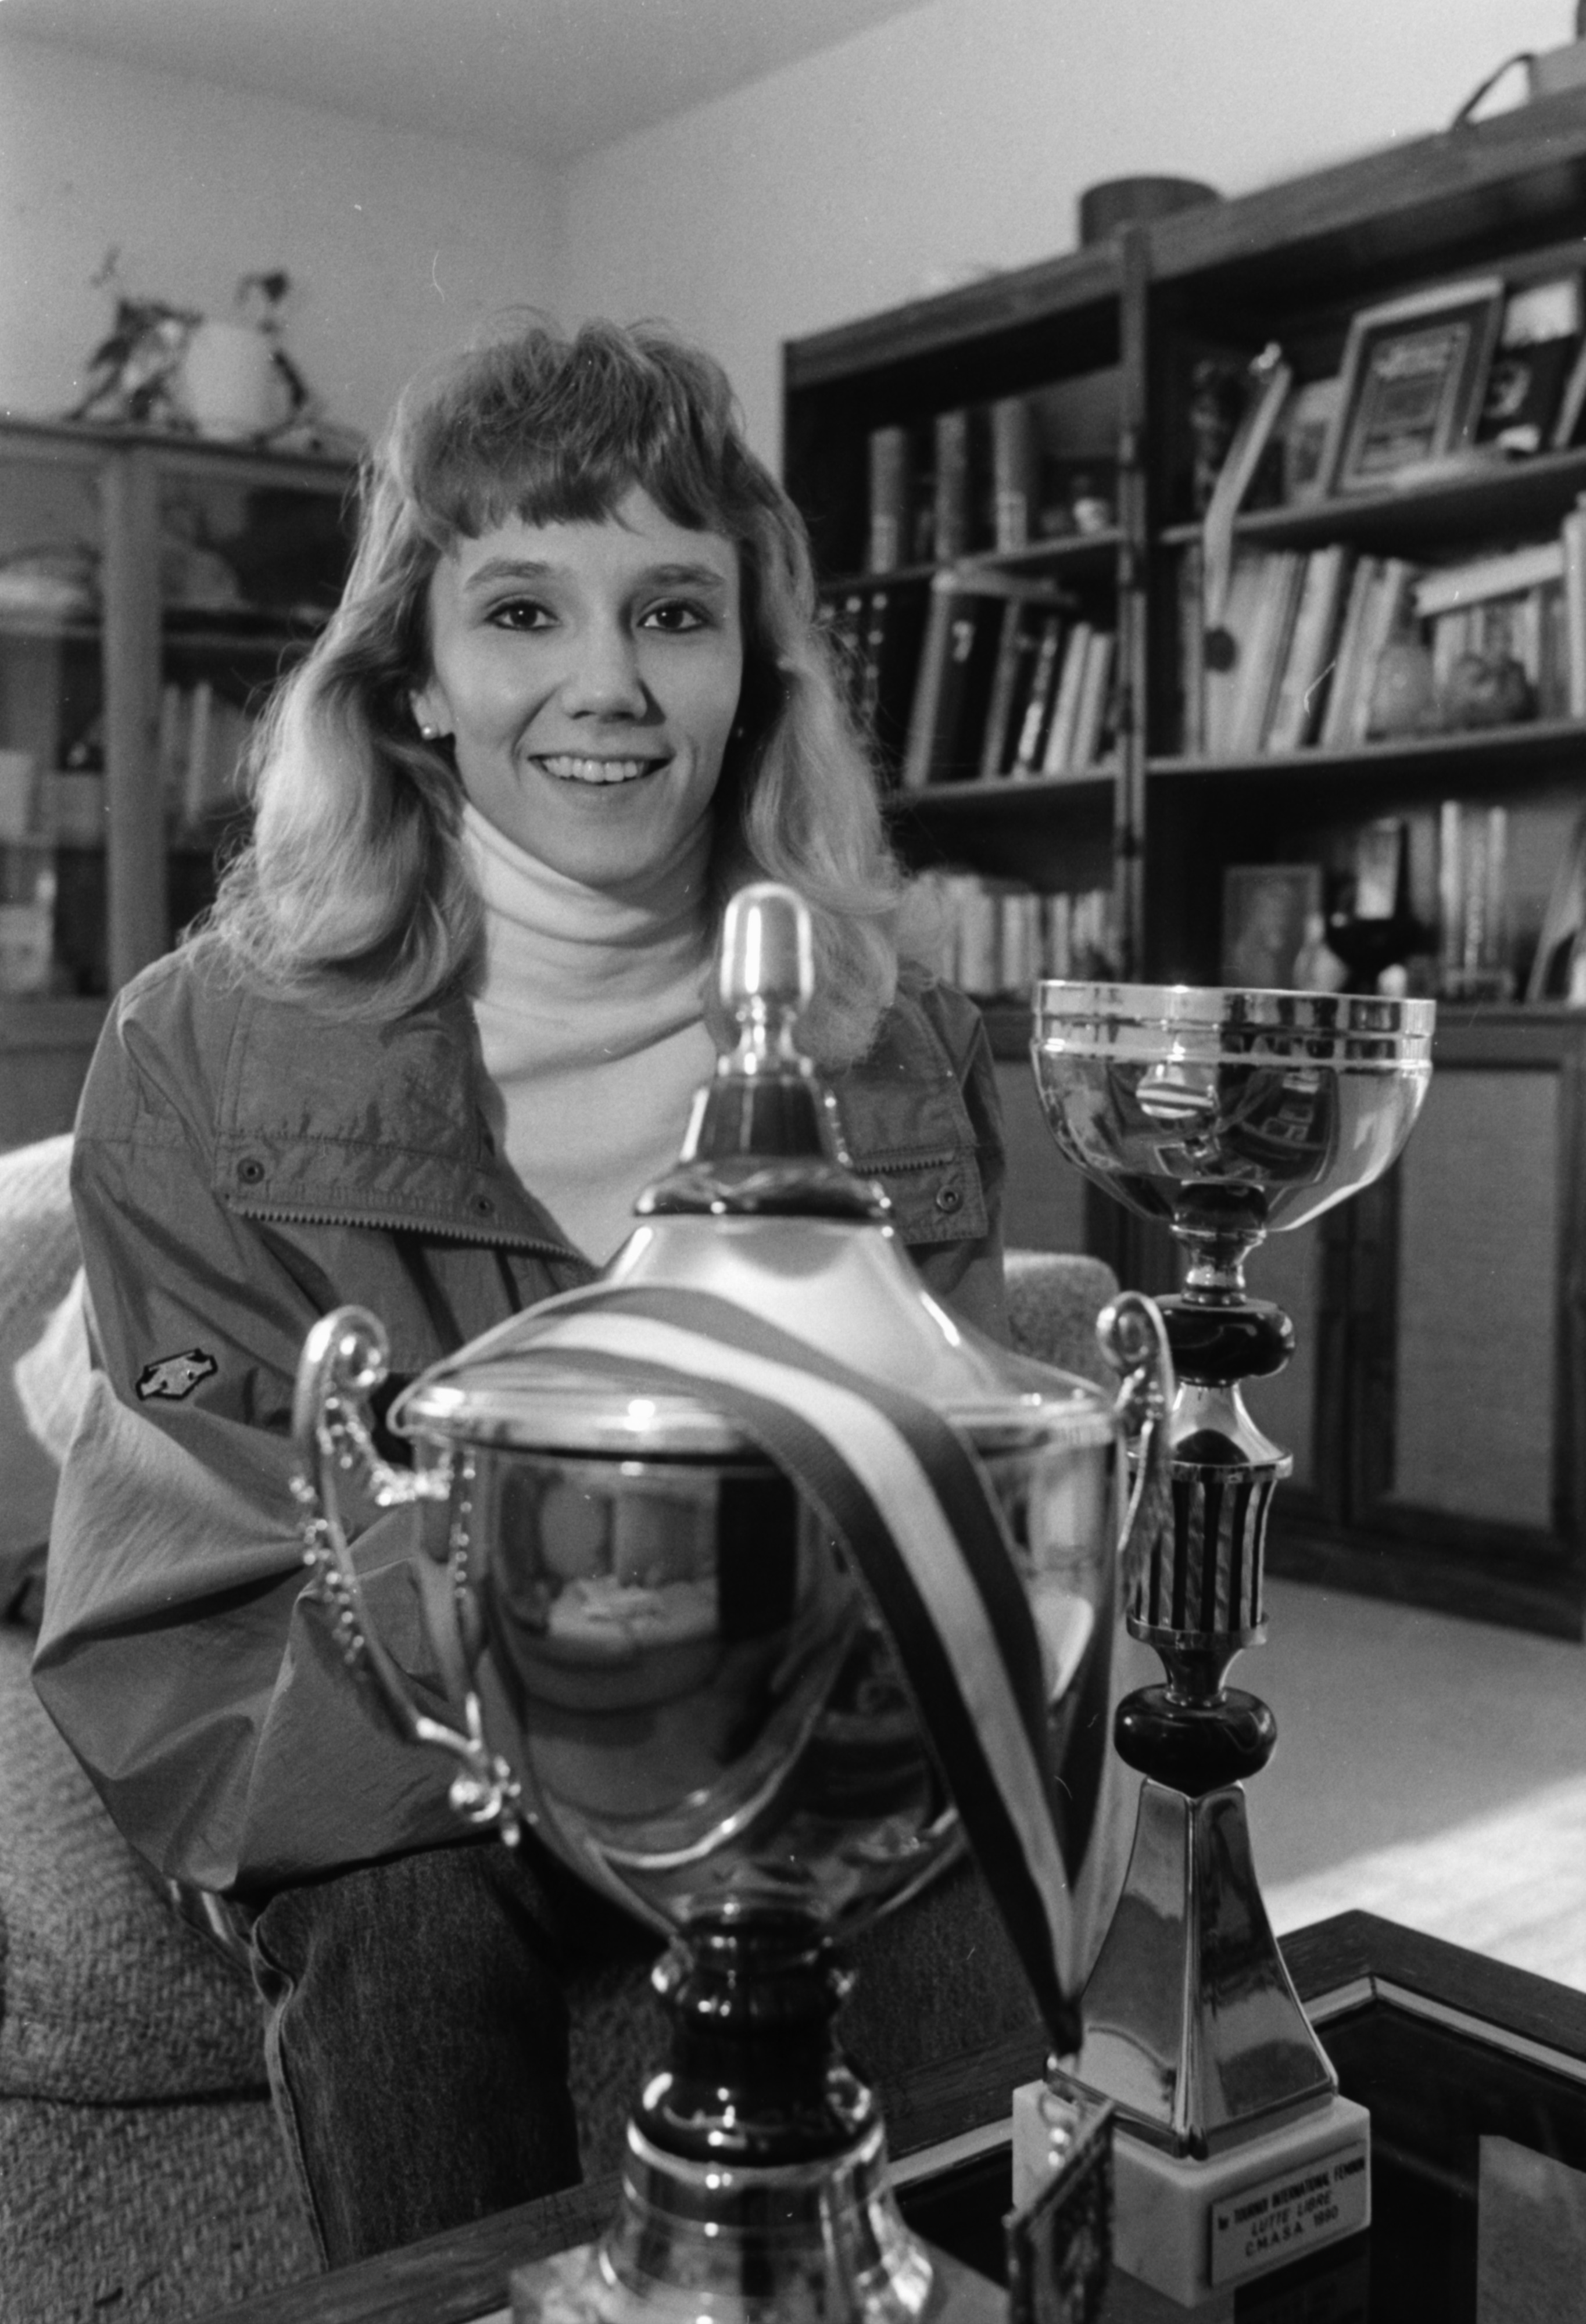 Tricia McNaughton With Wrestling Awards She Won In Europe, December 1990 image